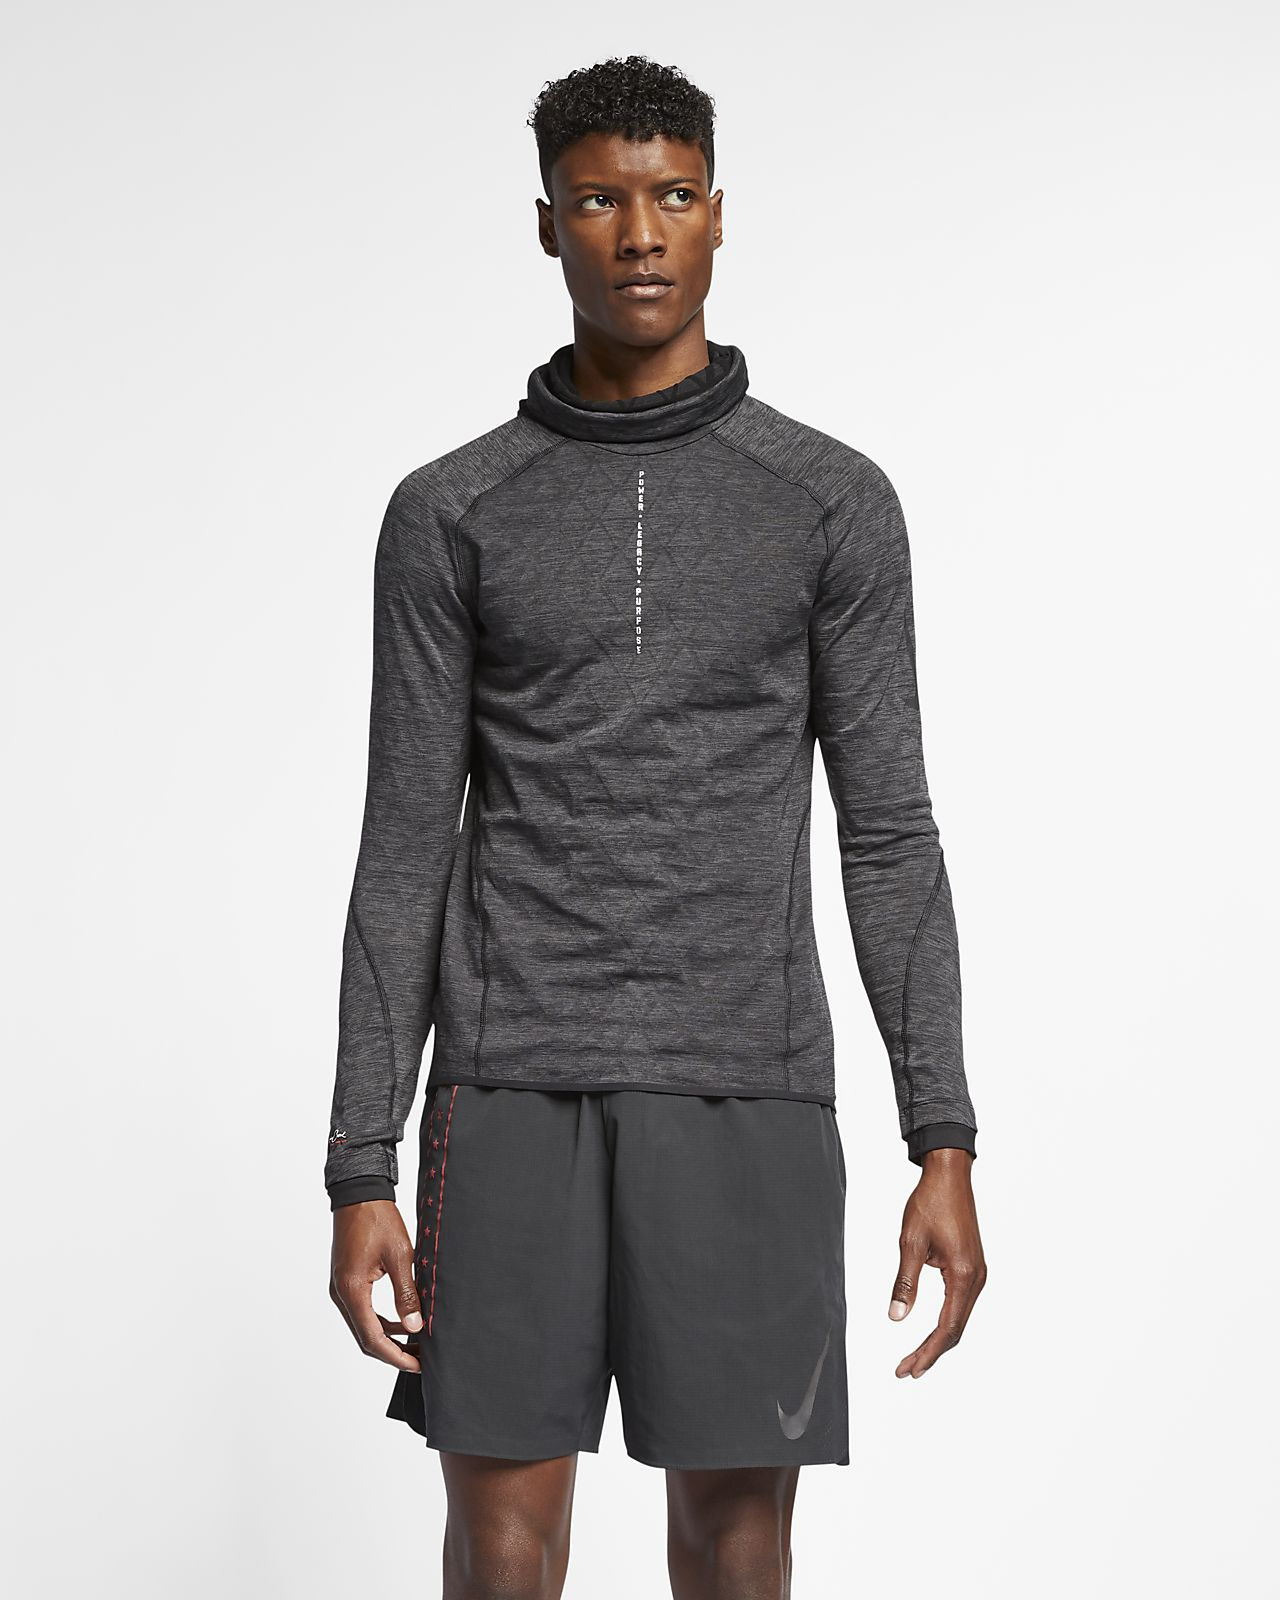 fdd38e14ead639 Nike Therma Sphere Adonis Creed Men s Long-Sleeve Training Top. Nike.com